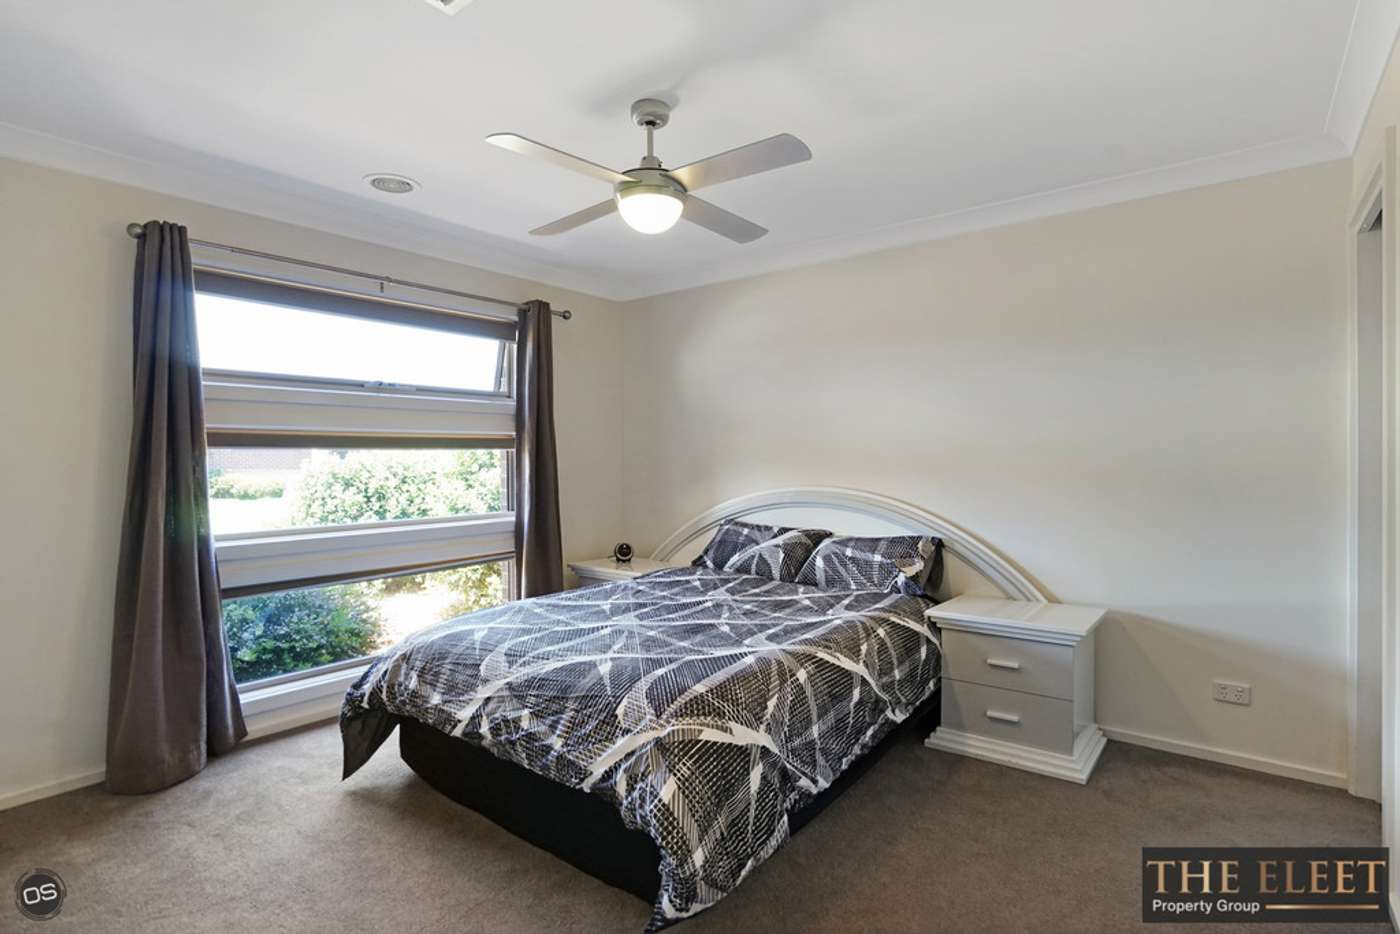 Fifth view of Homely house listing, 7 Benetti Drive, Lara VIC 3212